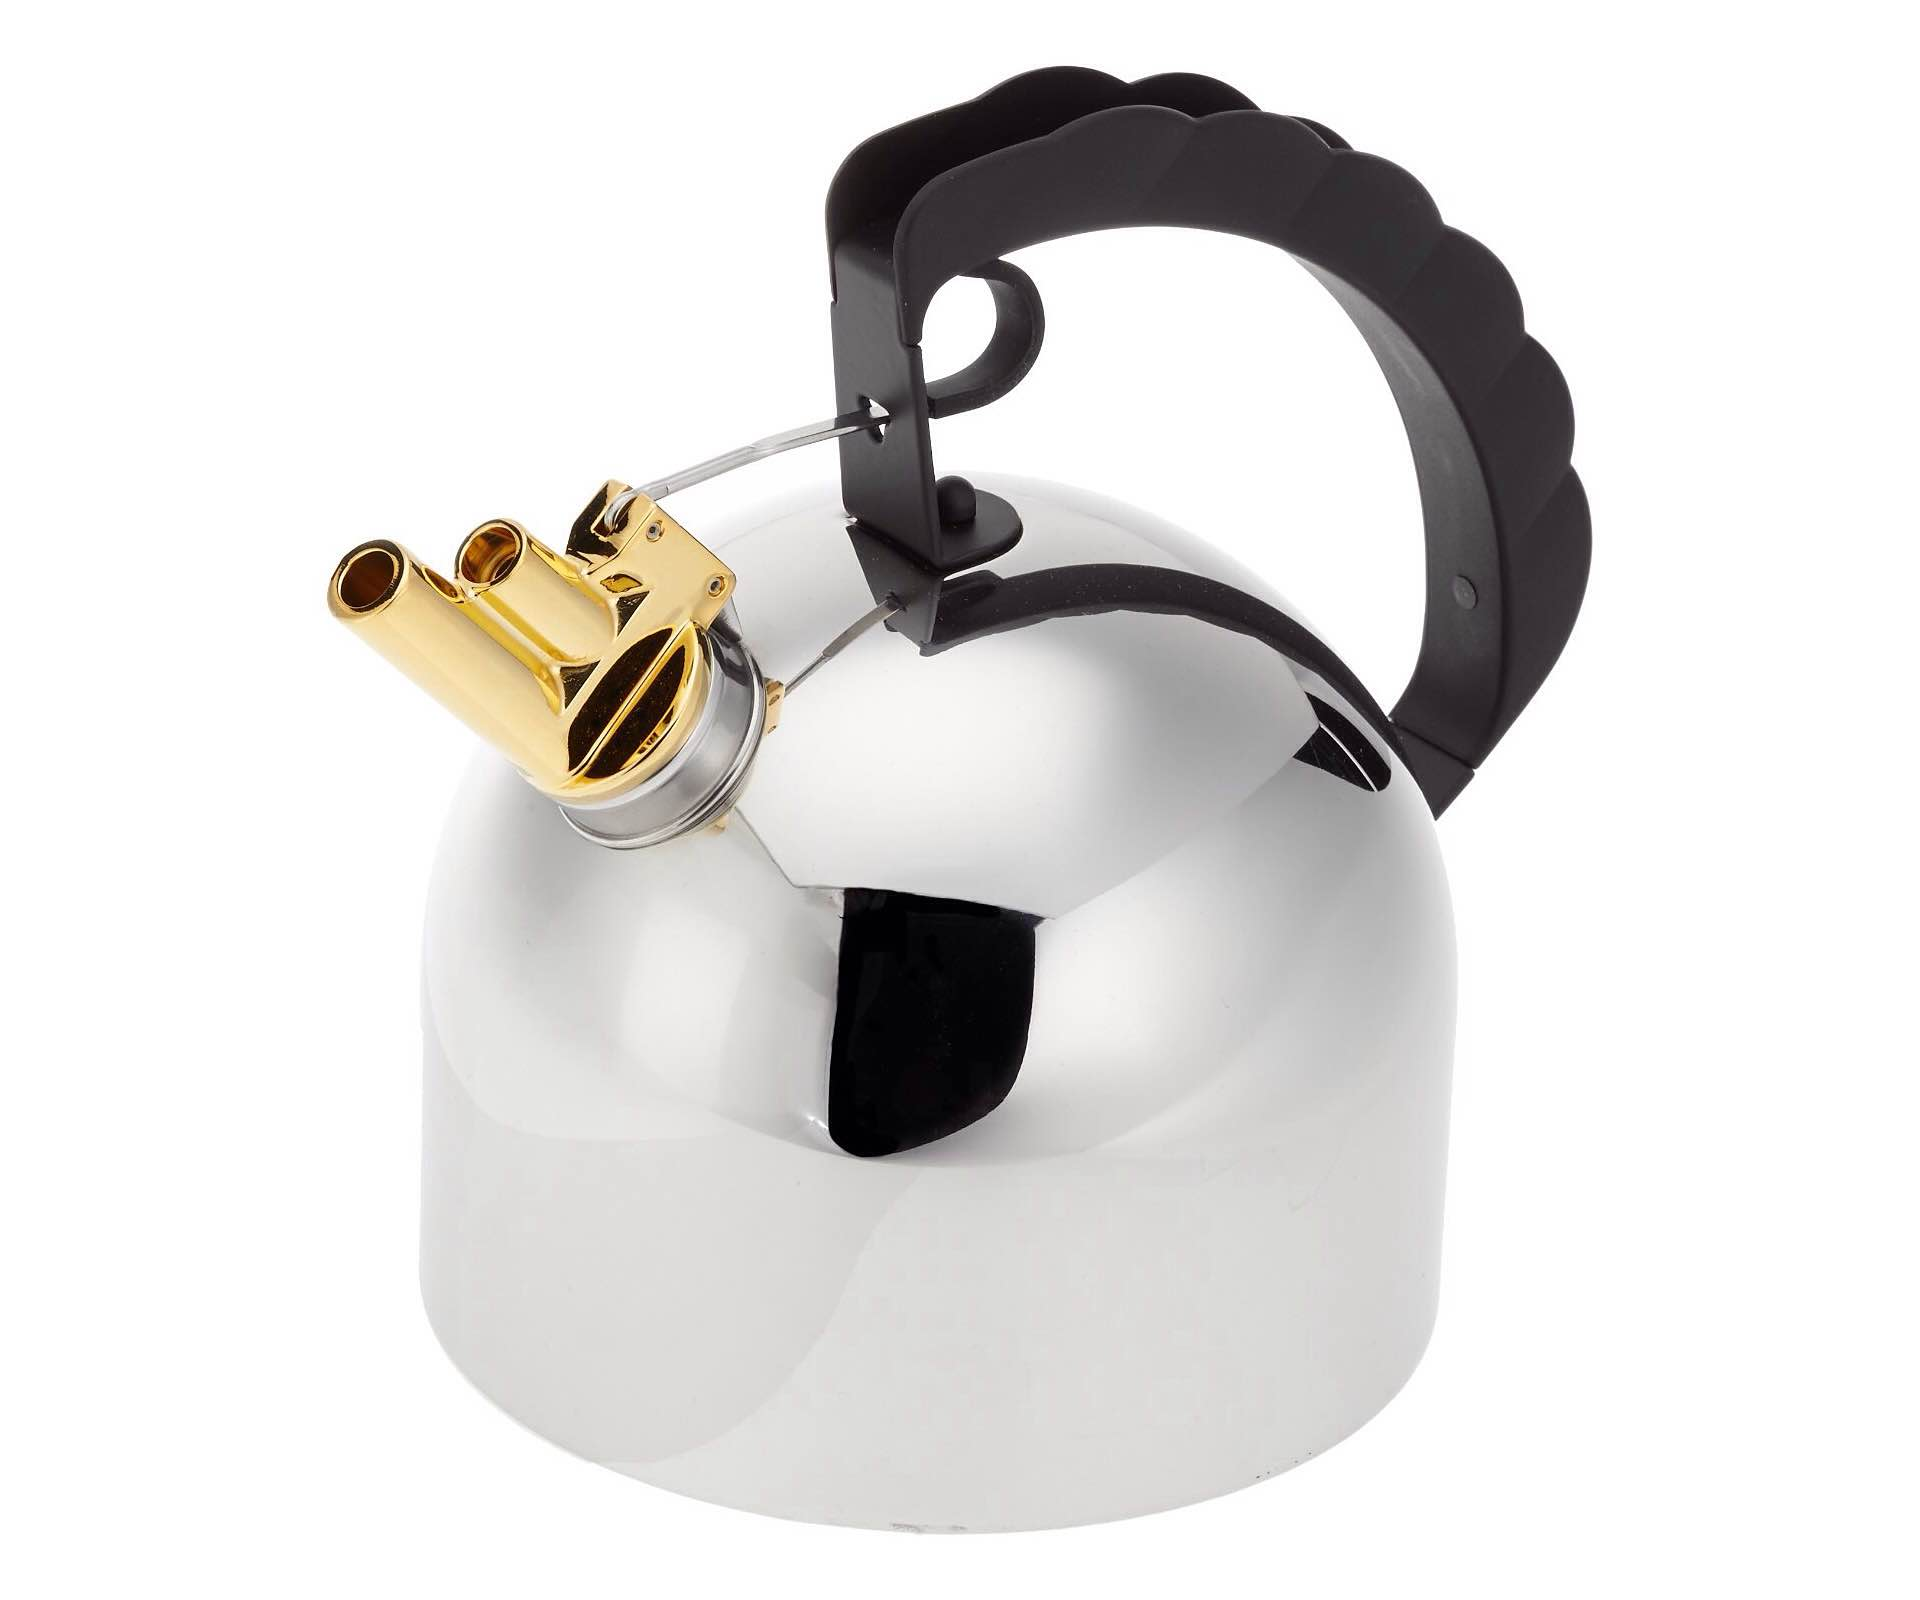 Richard Sapper's Alessi 9091 Melodic Kettle